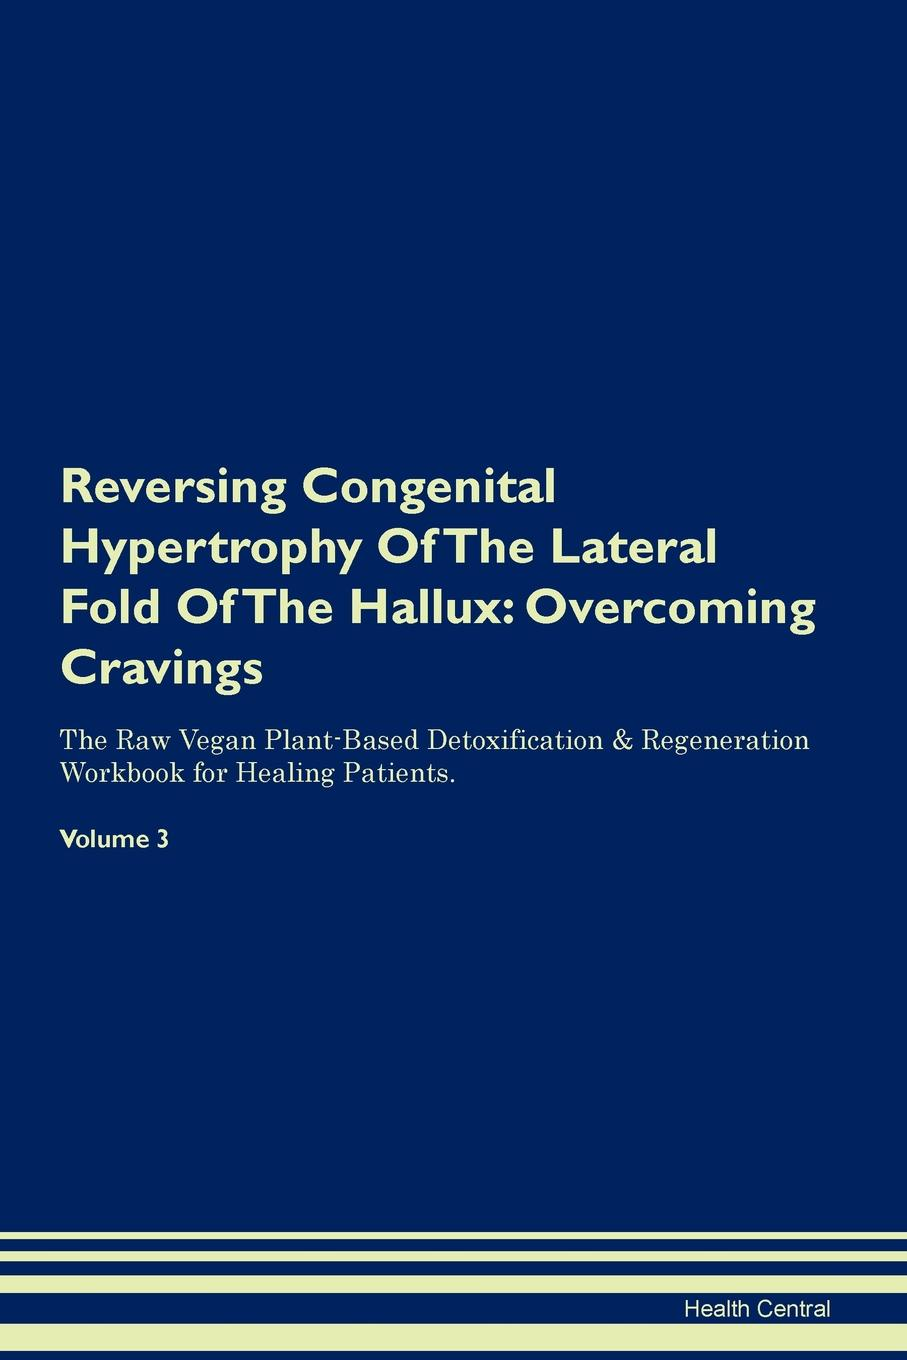 Health Central Reversing Congenital Hypertrophy Of The Lateral Fold Of The Hallux. Overcoming Cravings The Raw Vegan Plant-Based Detoxification . Regeneration Workbook for Healing Patients. Volume 3 fingerboard workbook for the ninth tenth and eleventh positions map the viola for good volume 7